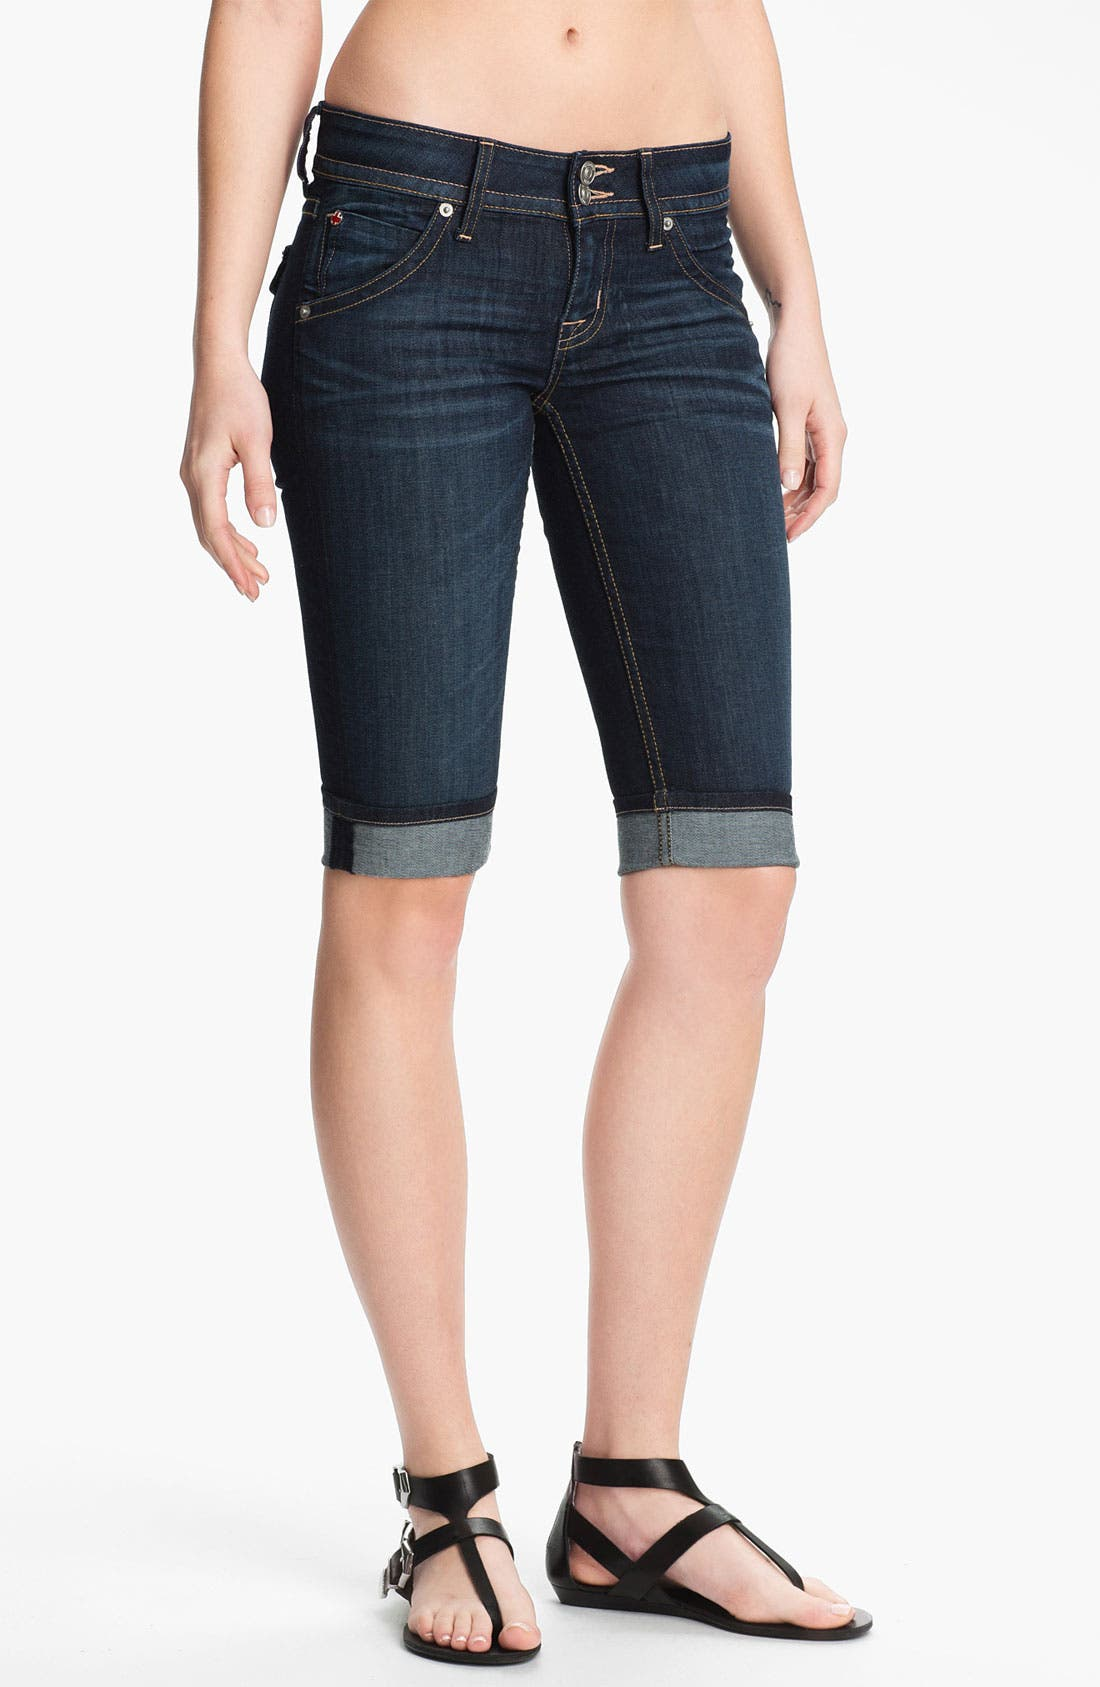 Alternate Image 1 Selected - Hudson Jeans Cuff Stretch Denim Bermuda Shorts (Stella)